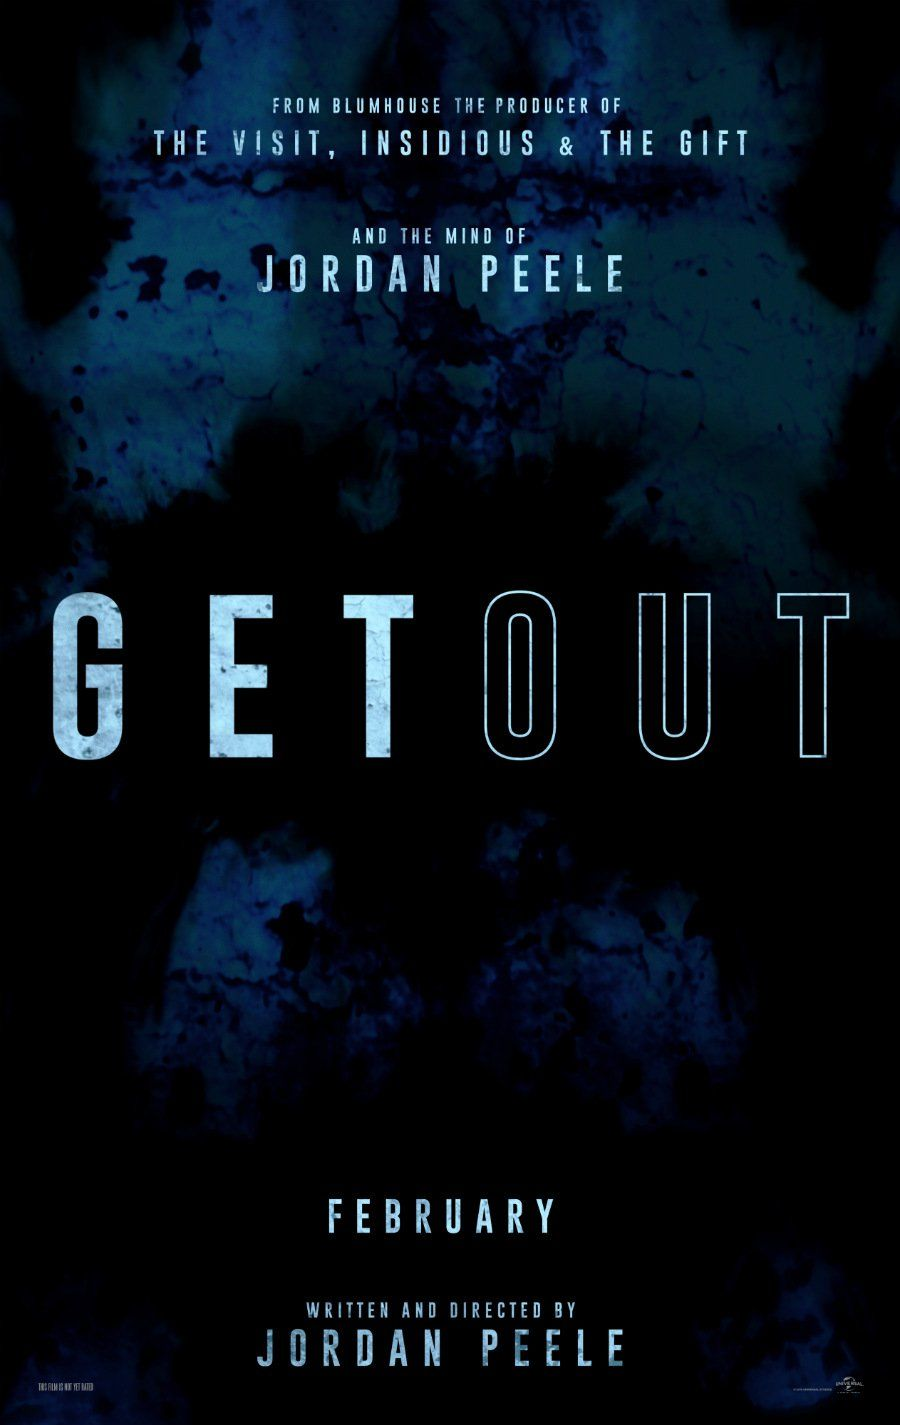 Get Out 2017 Movie Featurettes Streaming Movies Get Out 2017